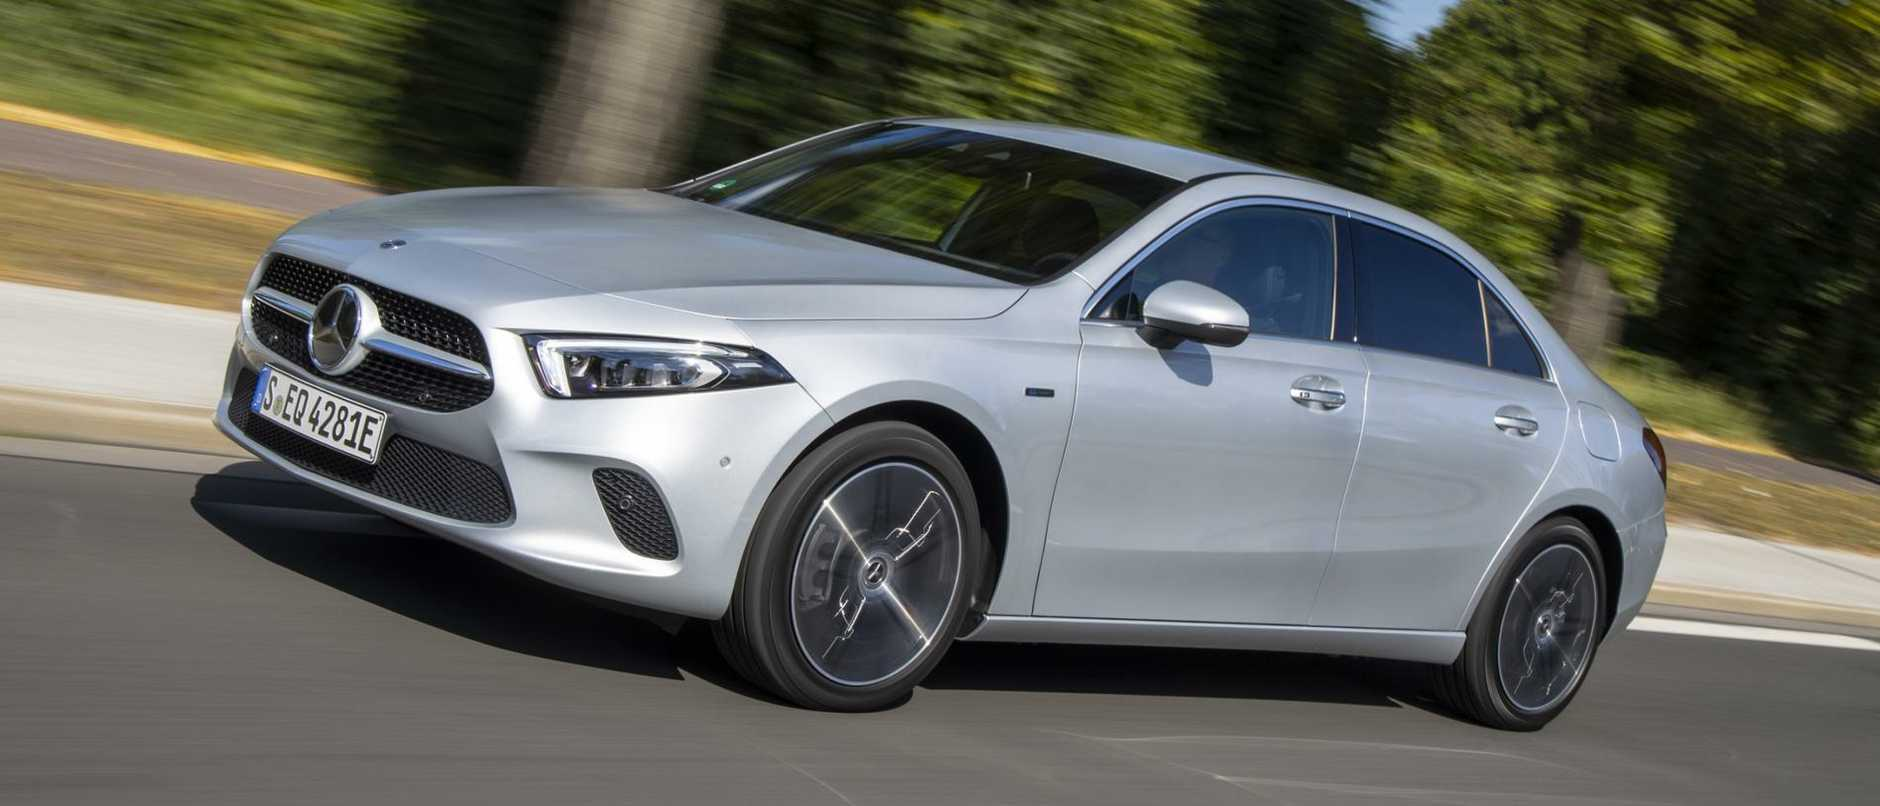 Mercedes A250 e sedan: Due in Australia early next year, claiming thirst of just 1.4L/100km